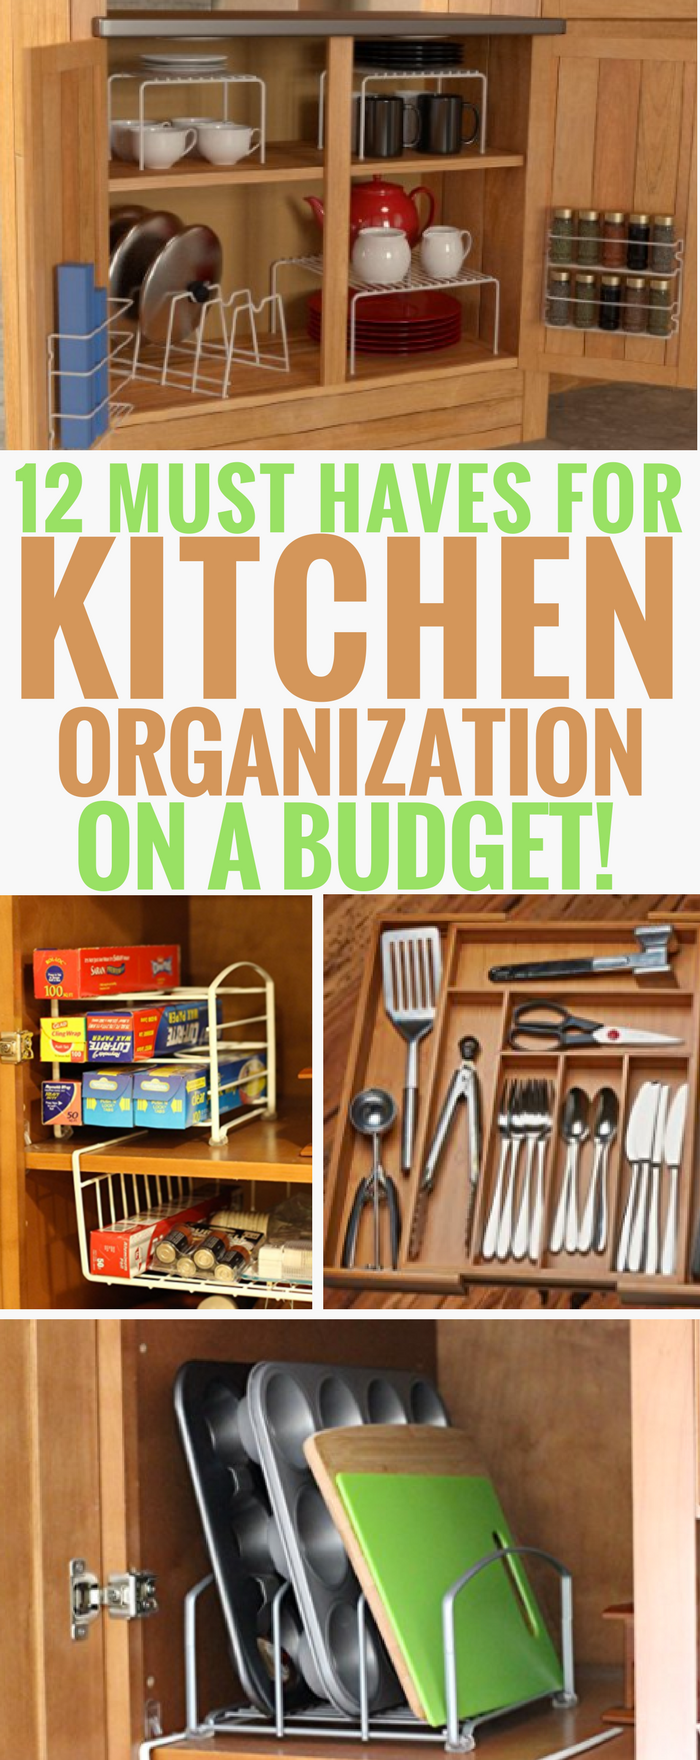 kitchen organization ideas budget 12 must products for kitchen organization on a budget 5436